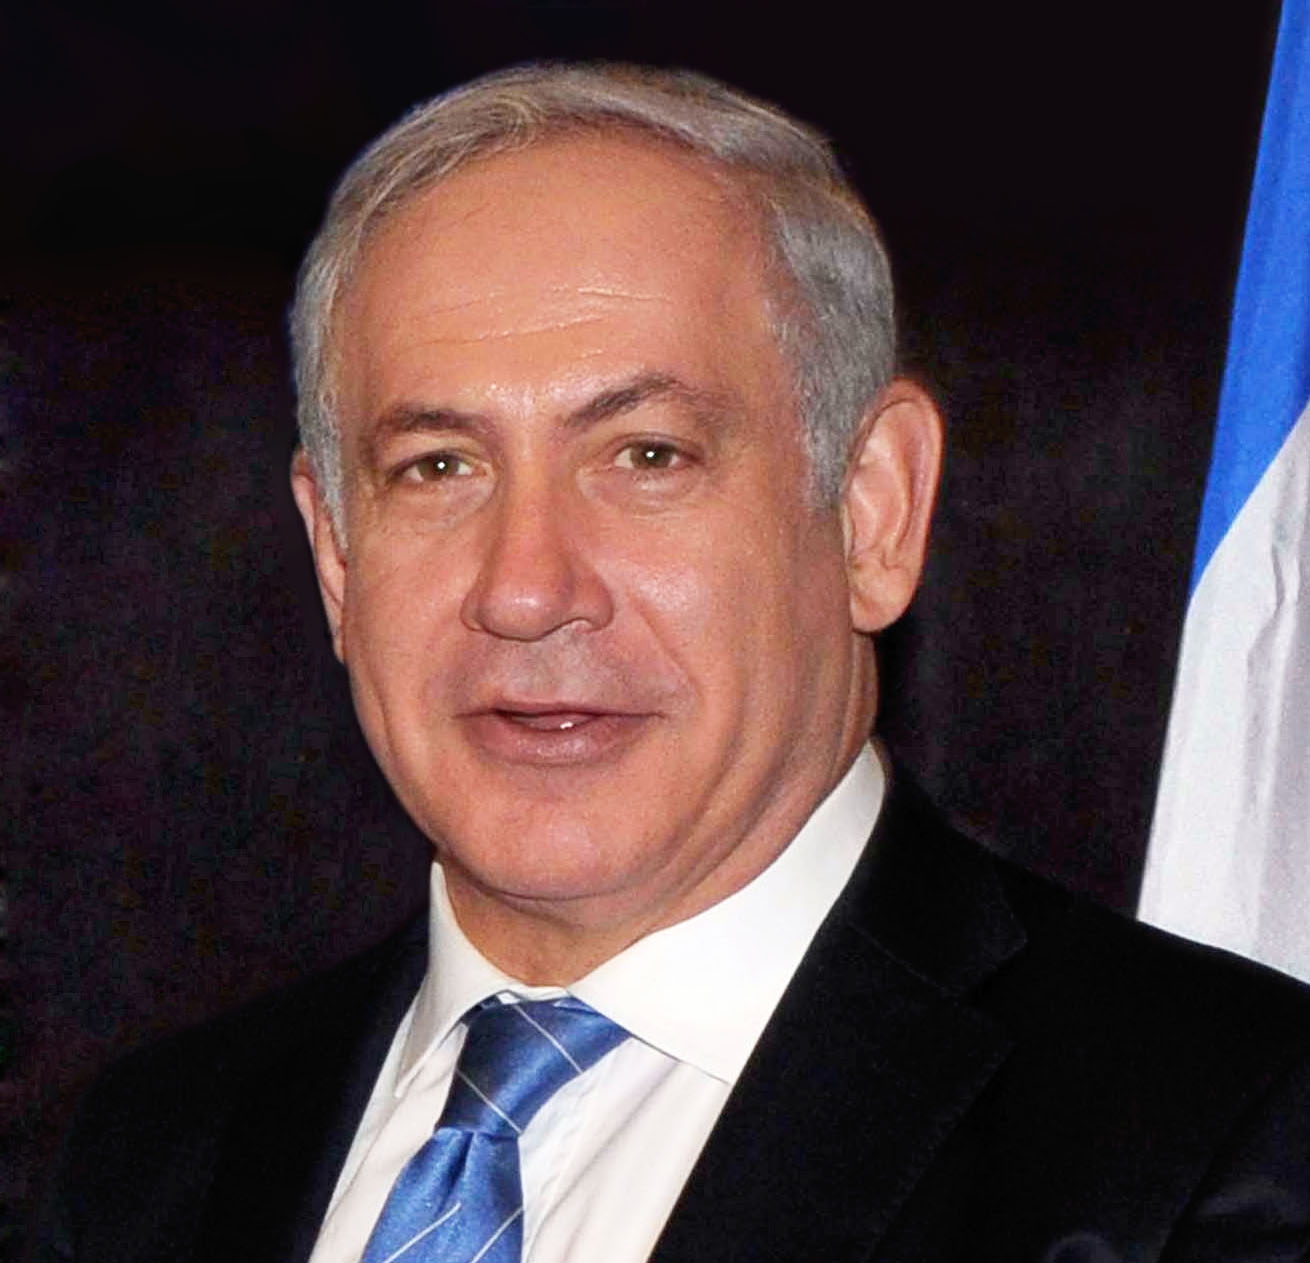 http://upload.wikimedia.org/wikipedia/commons/1/1e/Benjamin_Netanyahu_portrait.jpg